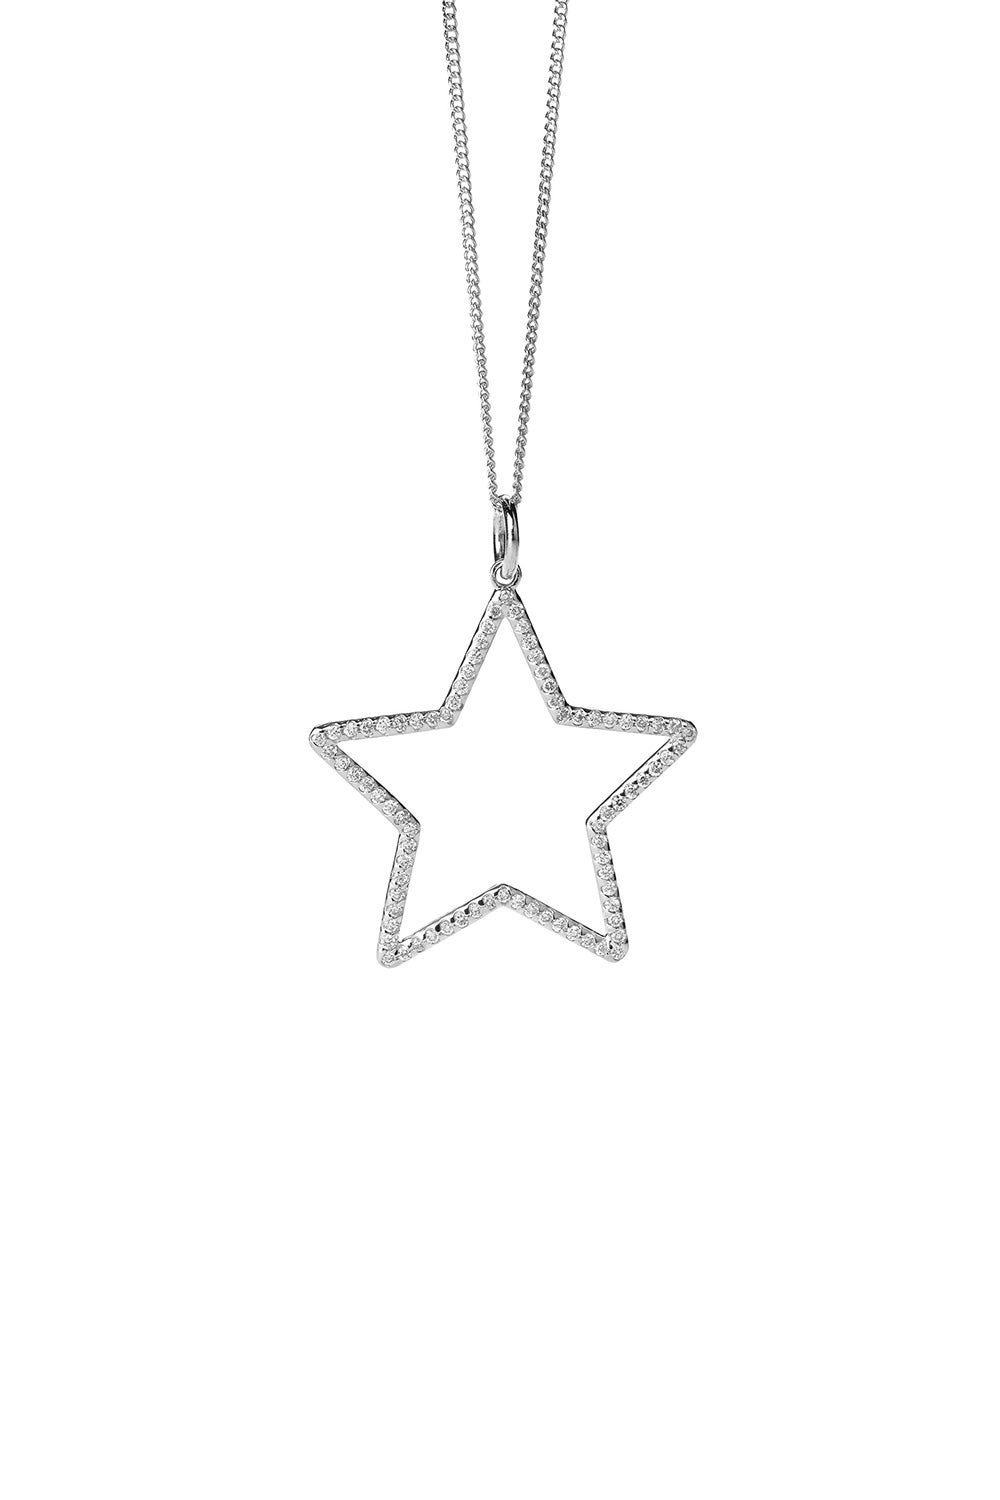 Diamond Star Necklace, White Gold, .44ct Diamond